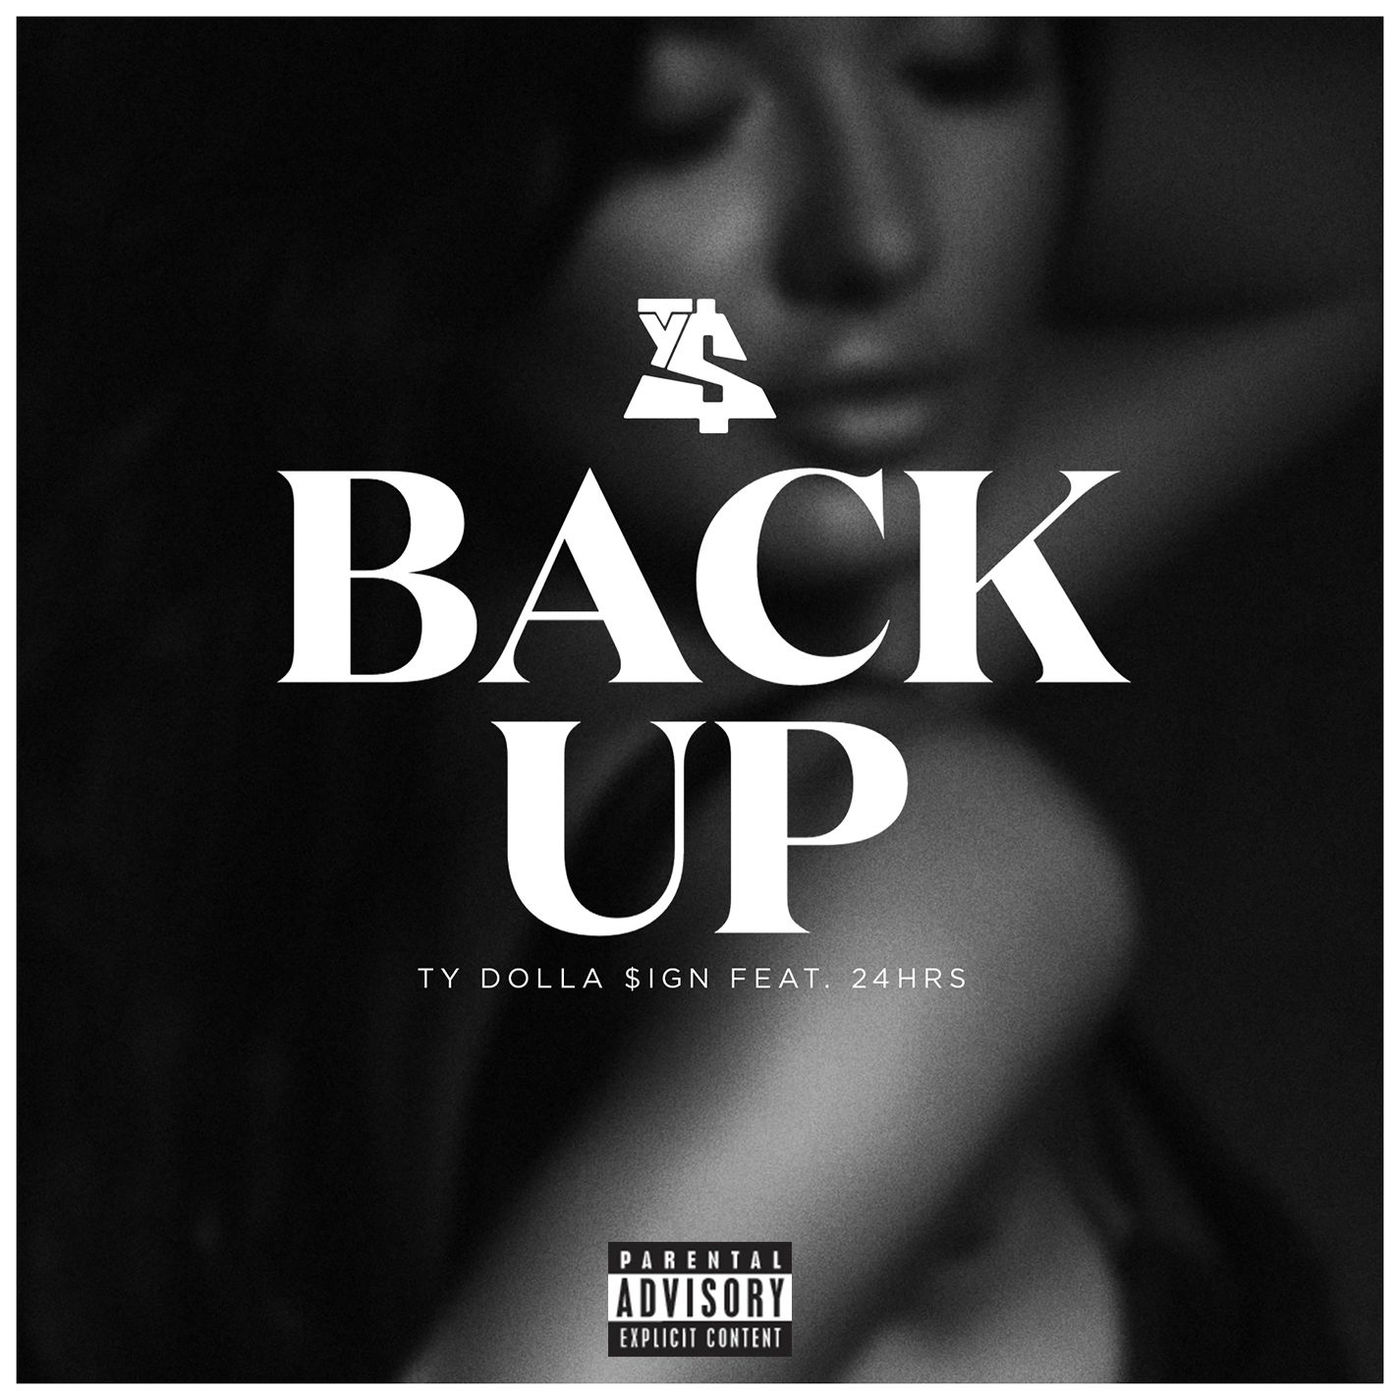 ty dolla ign back up feat 24hrs single